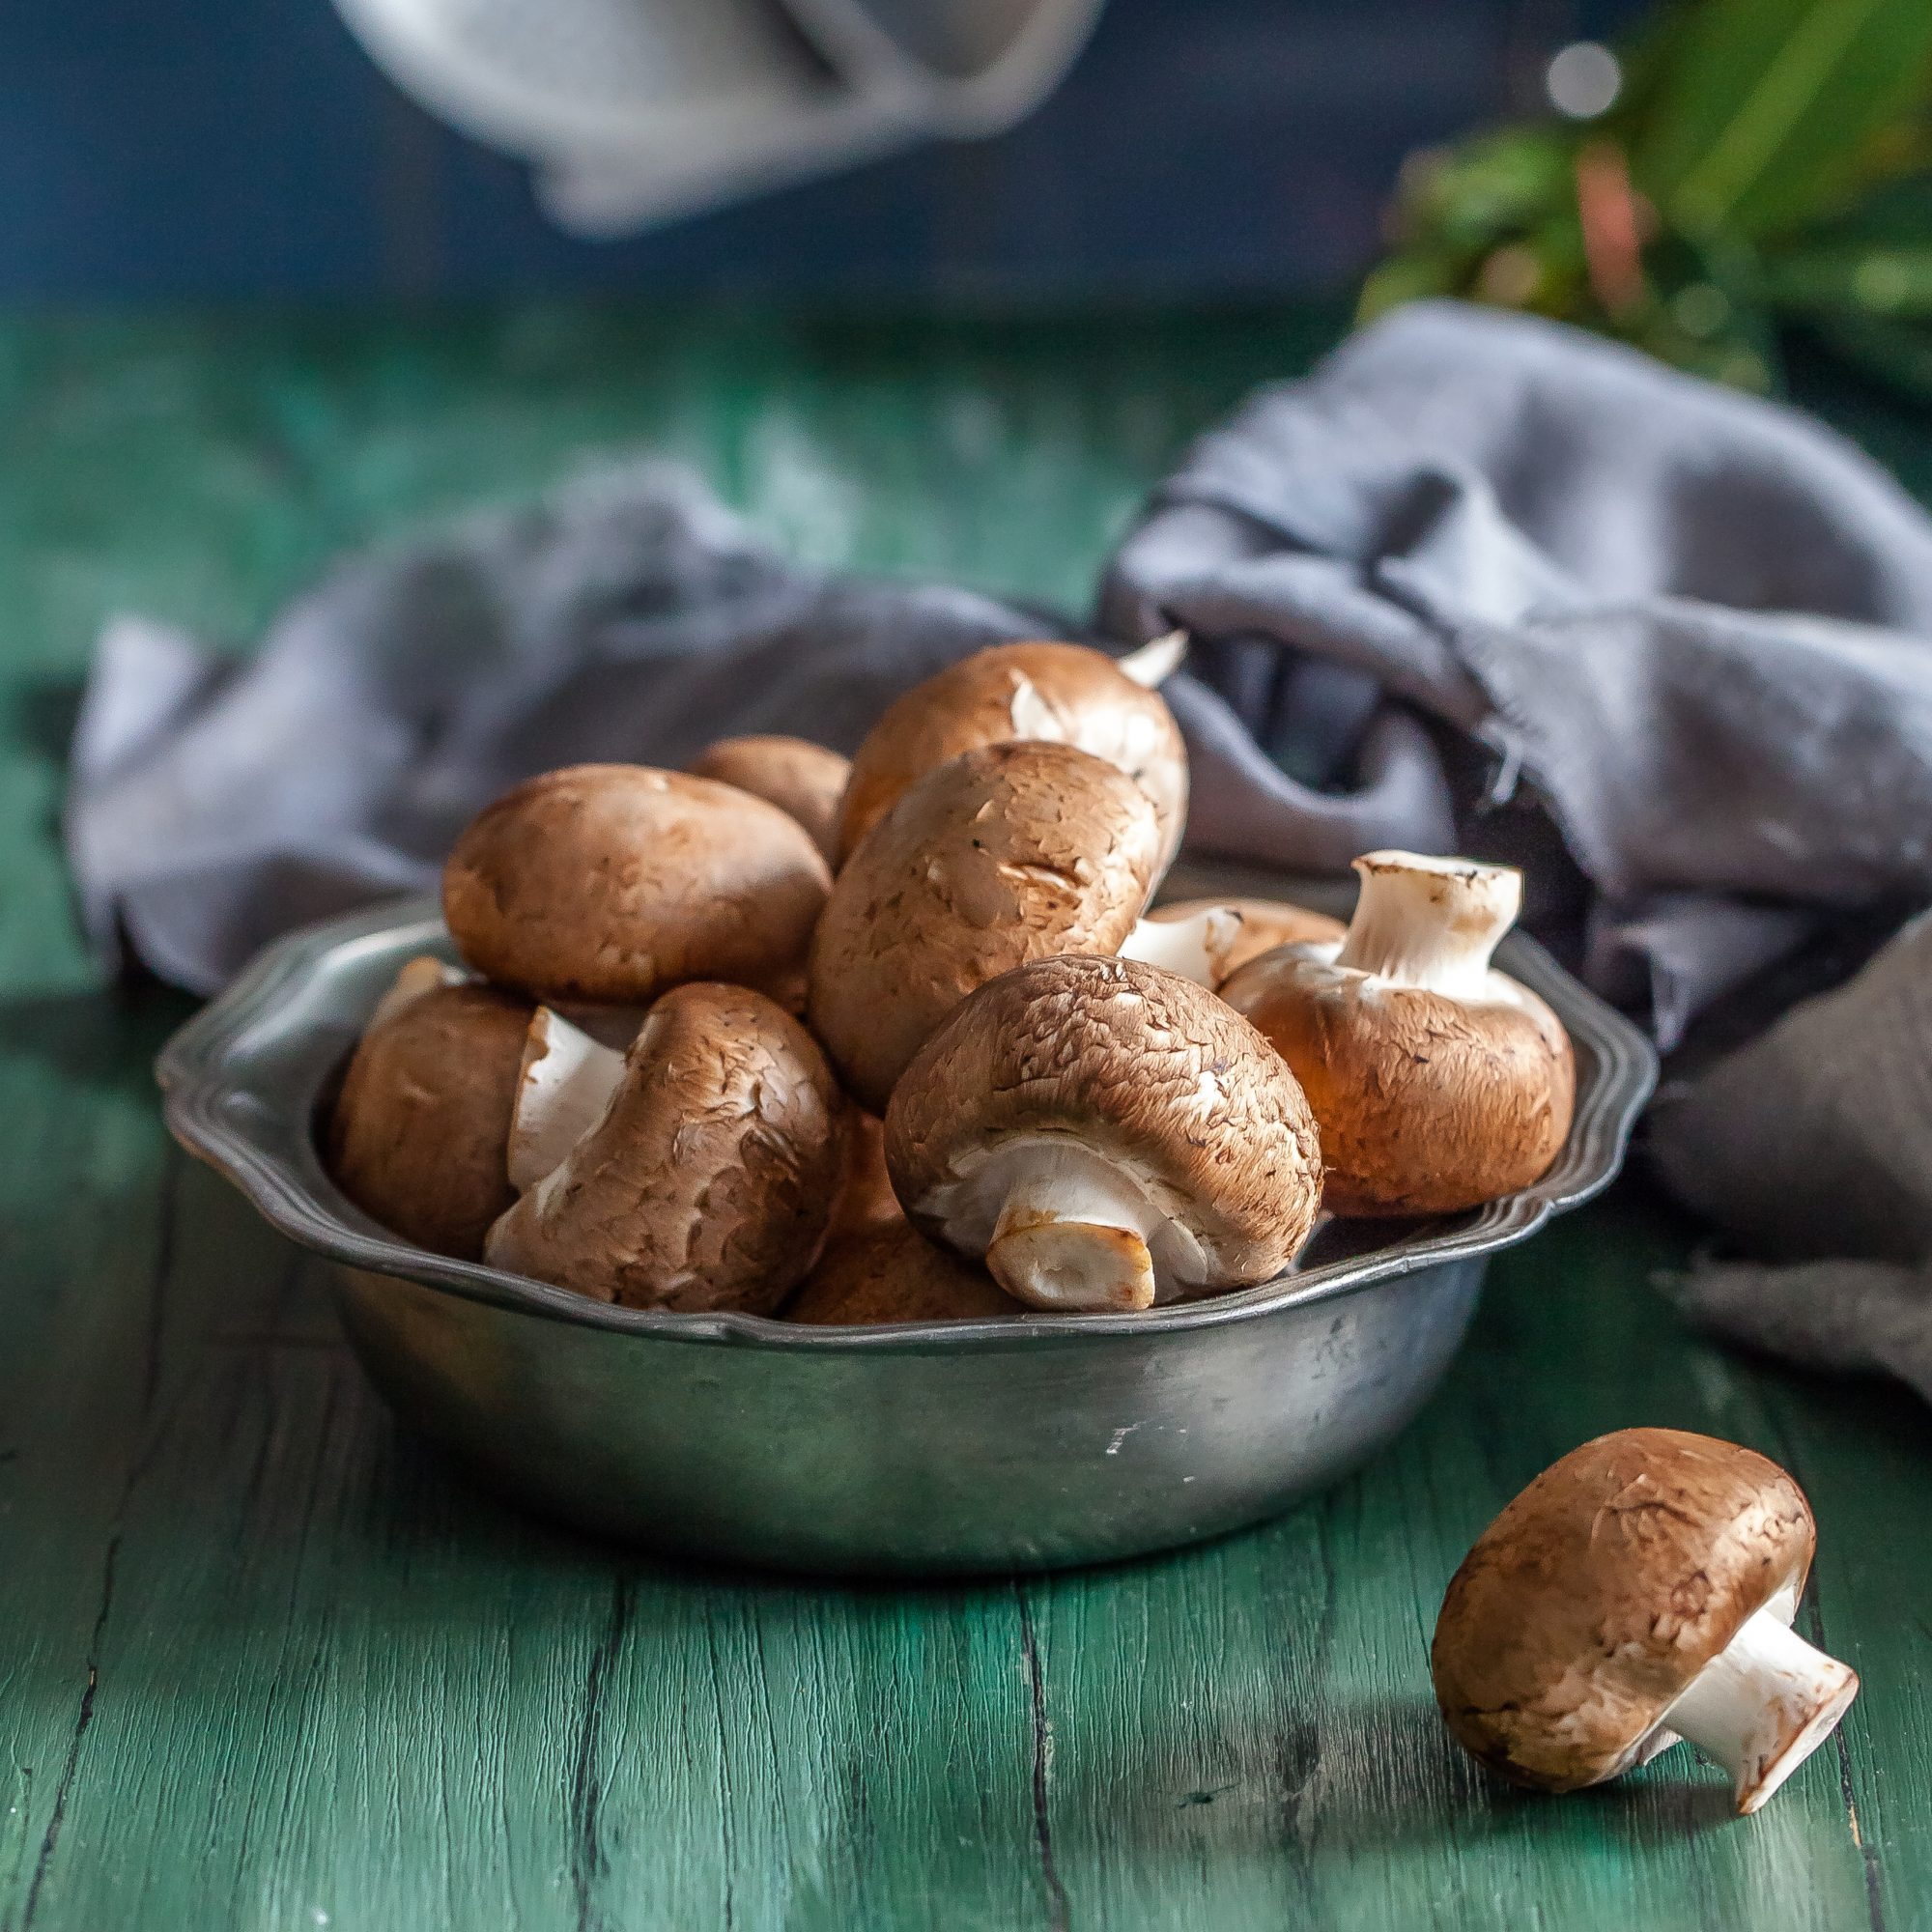 """Mushrooms are super dirty. Don't cook them without washing them, but don't let them sit in water, either. Since mushrooms are like sponges that soak up water, you don't want to compromise their taste and texture by soaking them. """"You should wash mushrooms with water then blot them dry with a paper towel,"""" Michalczyk. Why this method? Damp mushrooms don't cook as well."""